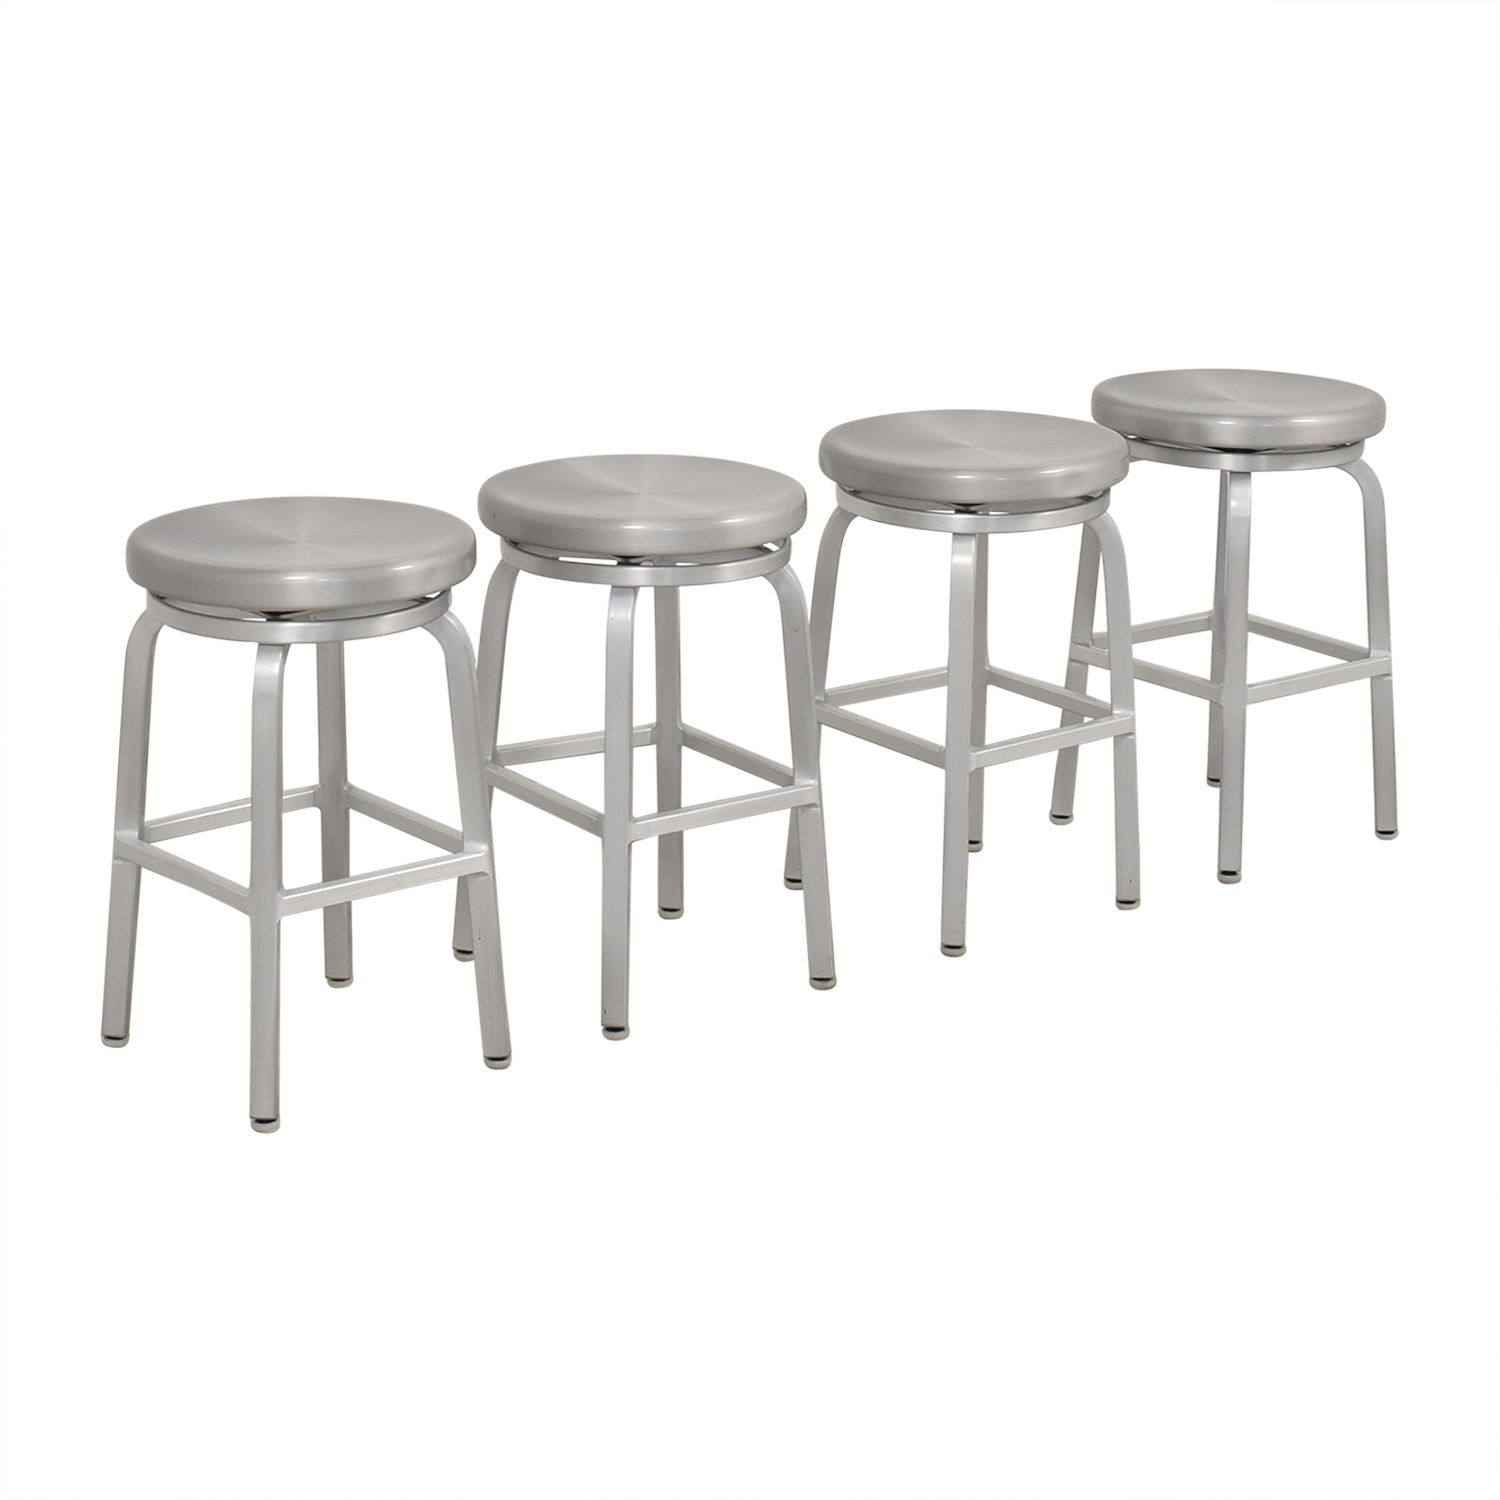 Crate & Barrel Crate & Barrel Spin Swivel Backless Counter Stool ct